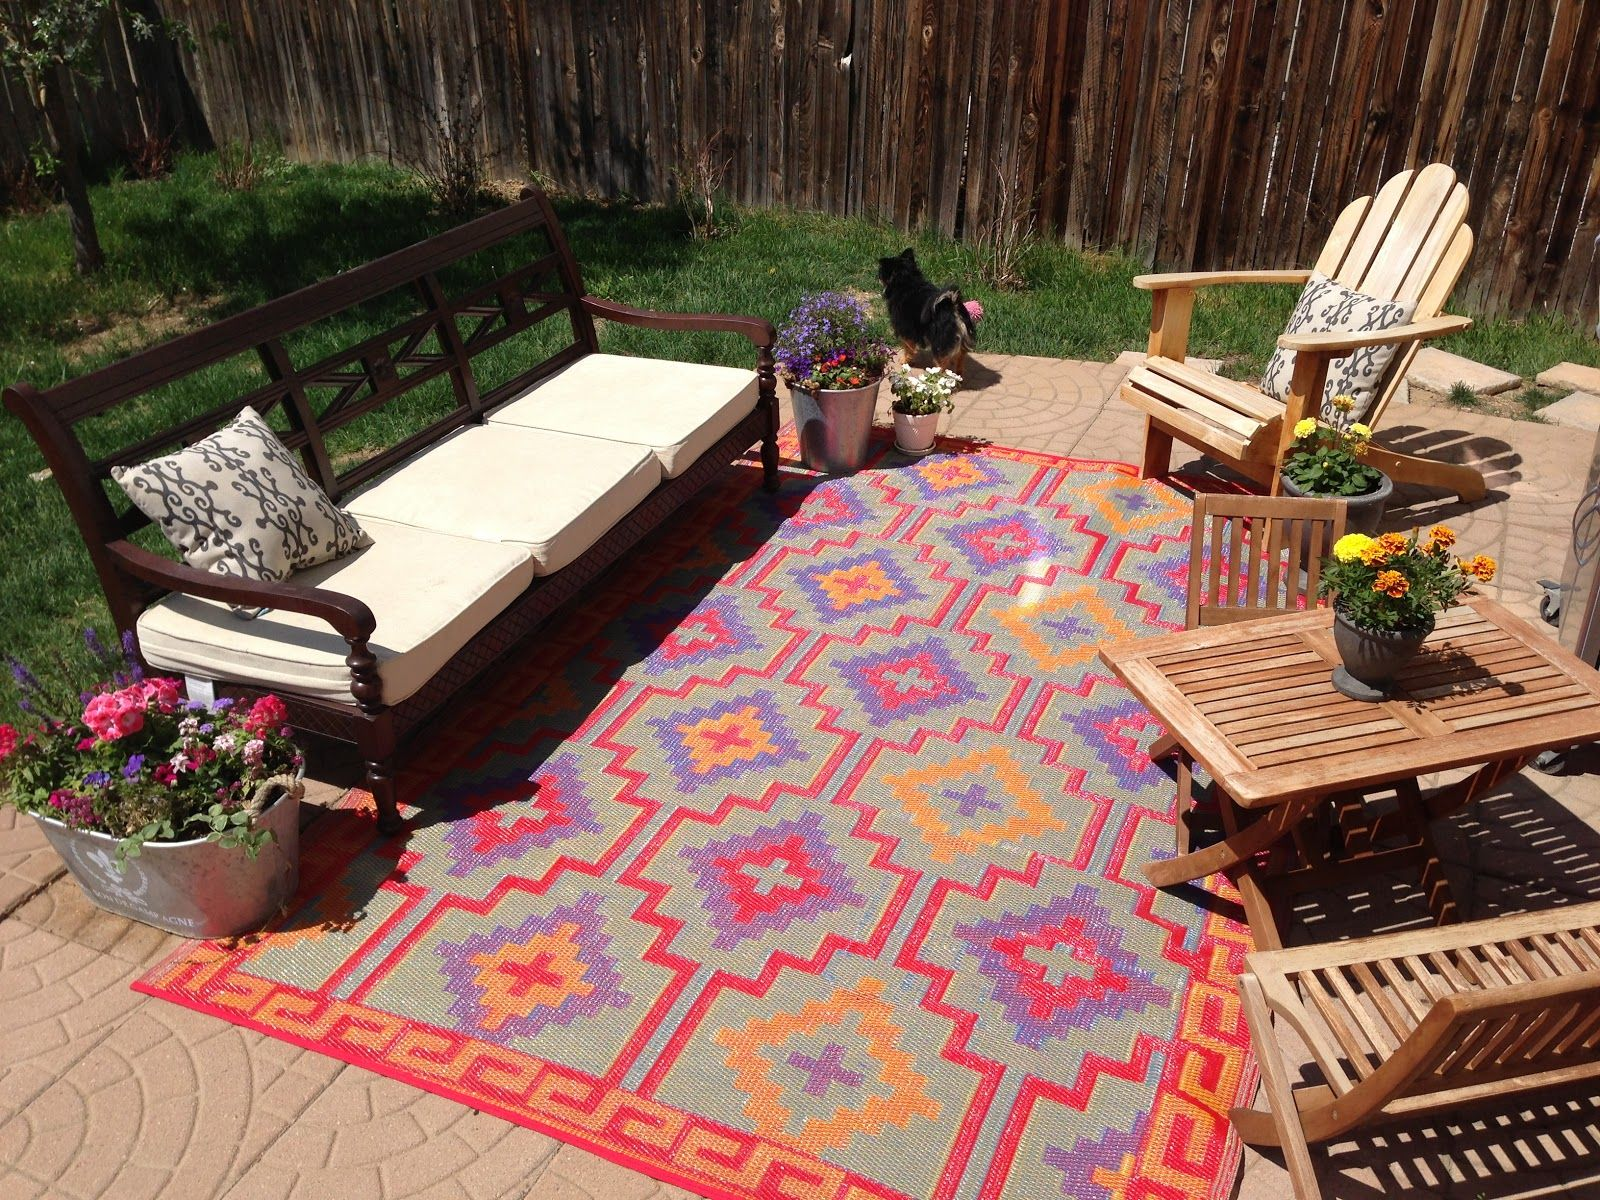 Exceptional Depiction Of Recycled Plastic Outdoor Rugs: Environmentally Friendly Choice